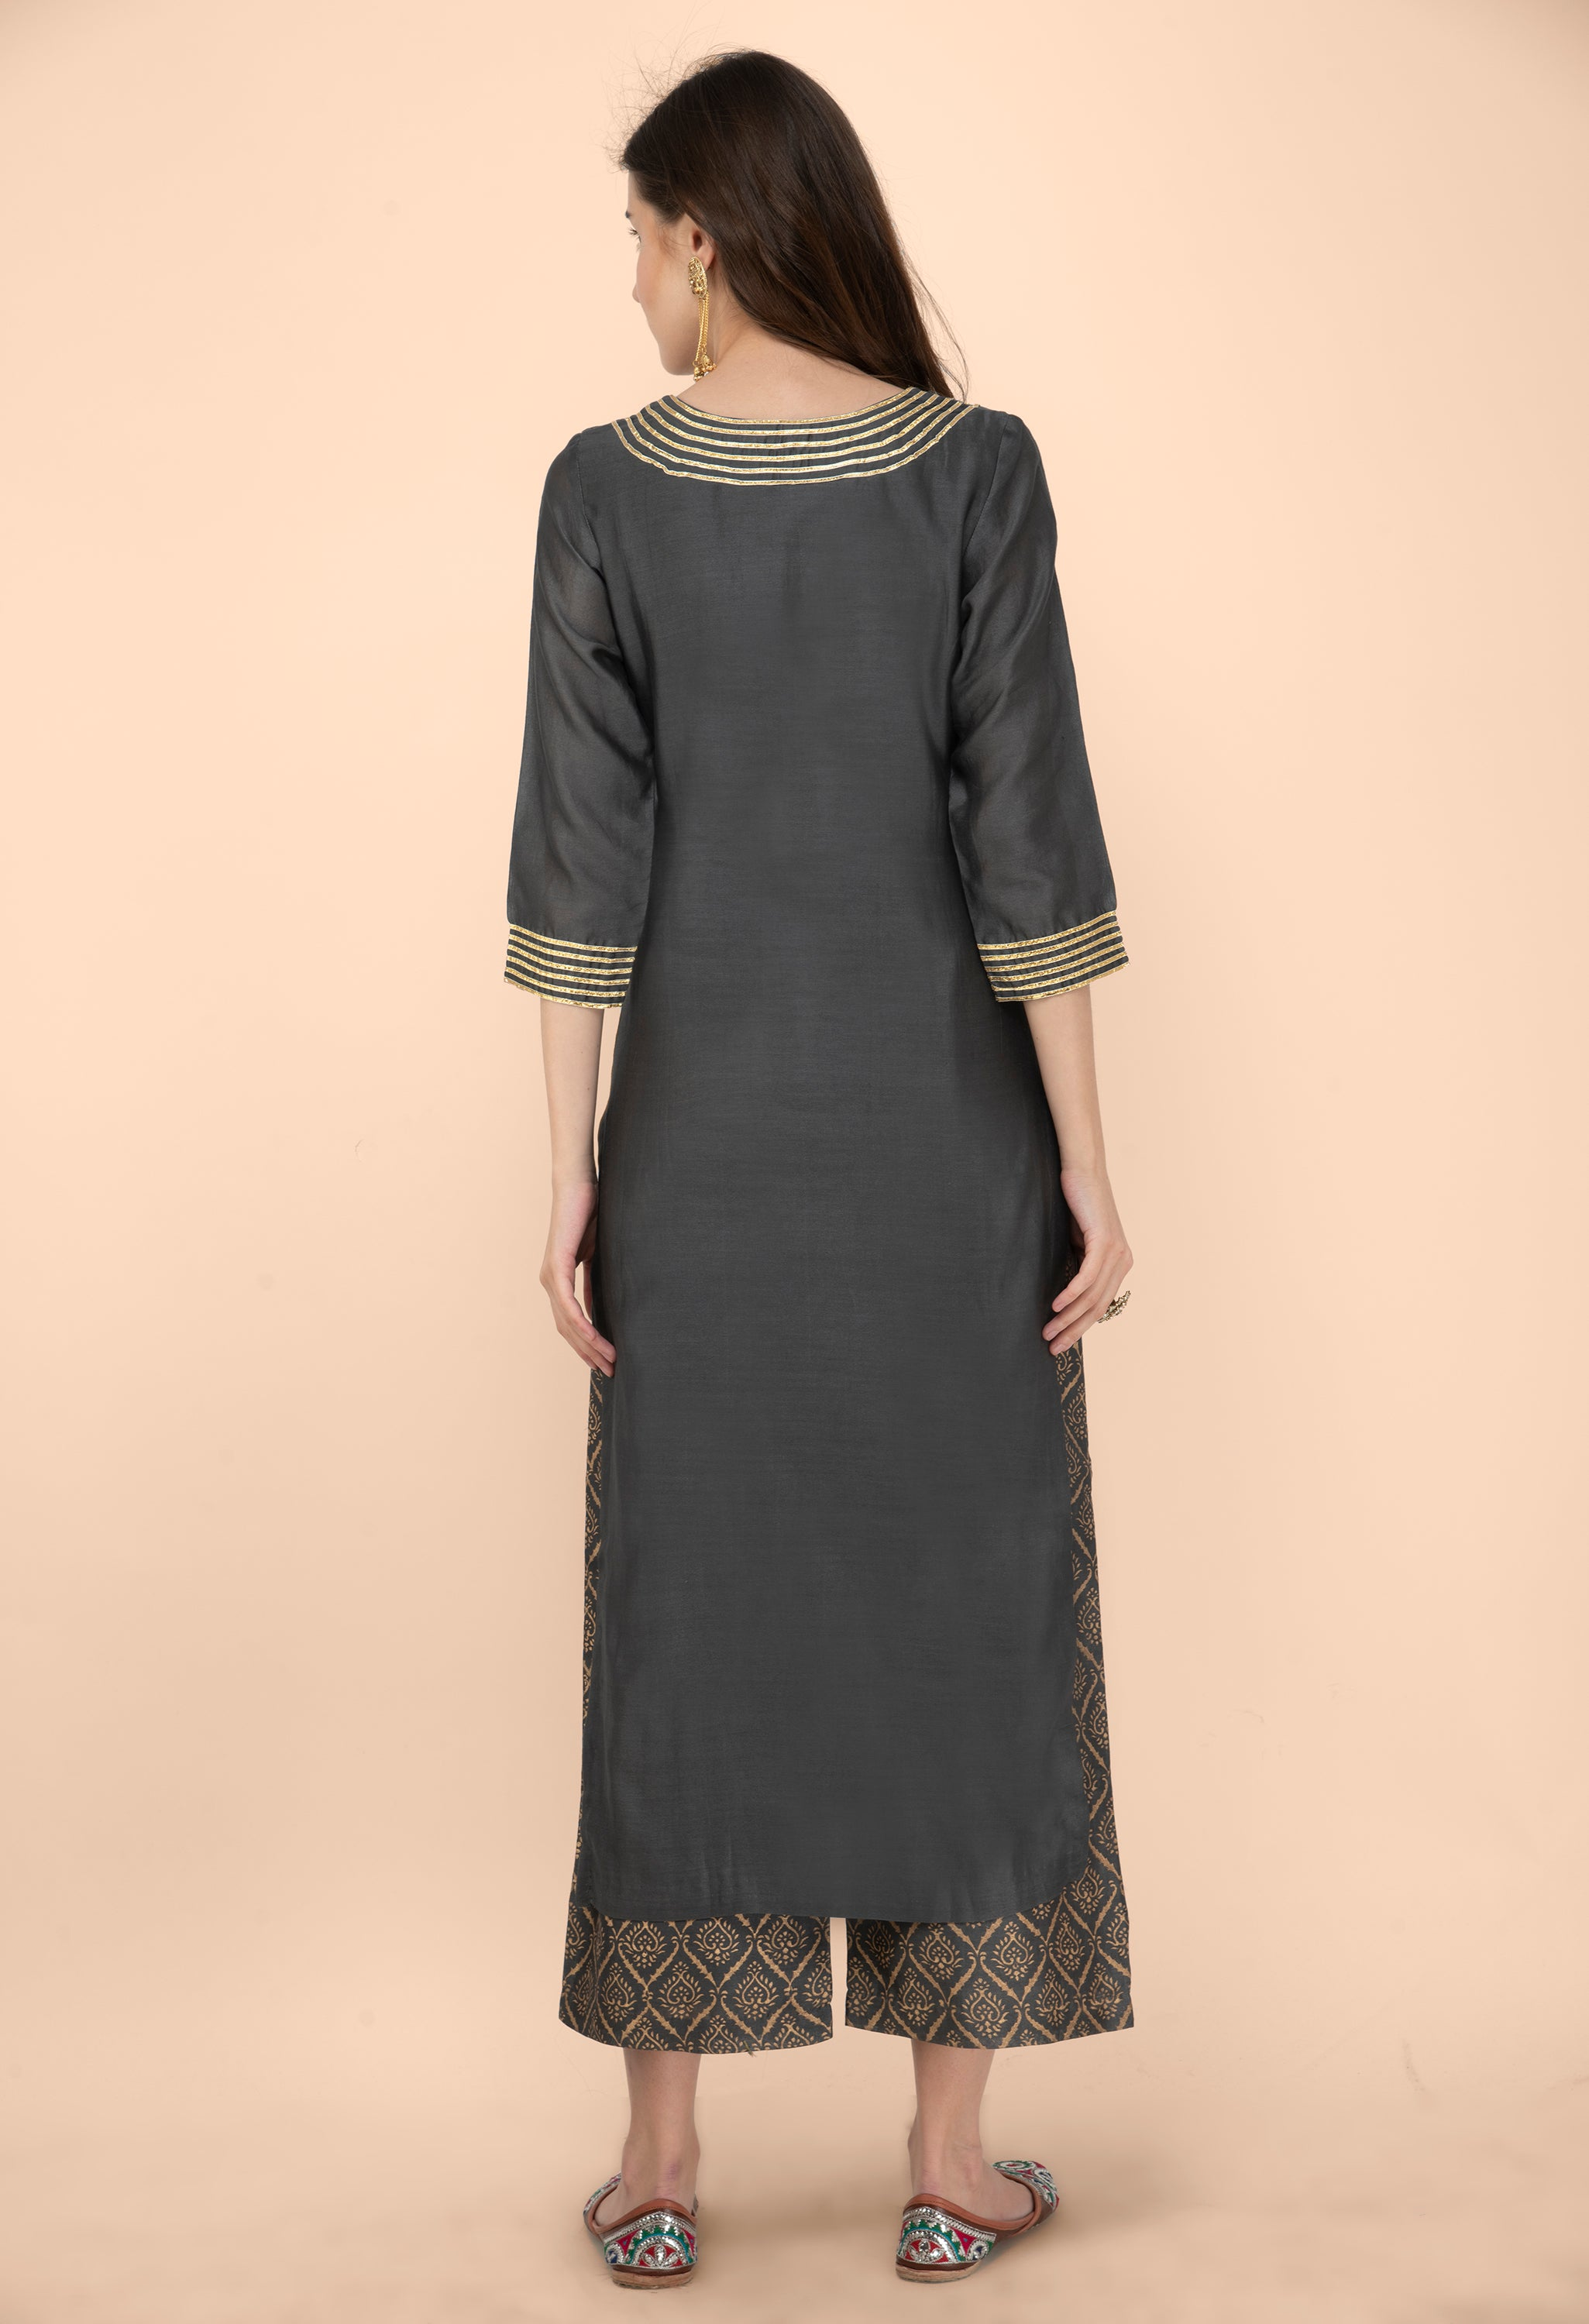 Grey Chanderi Kurta with Gota Detailing on Neck